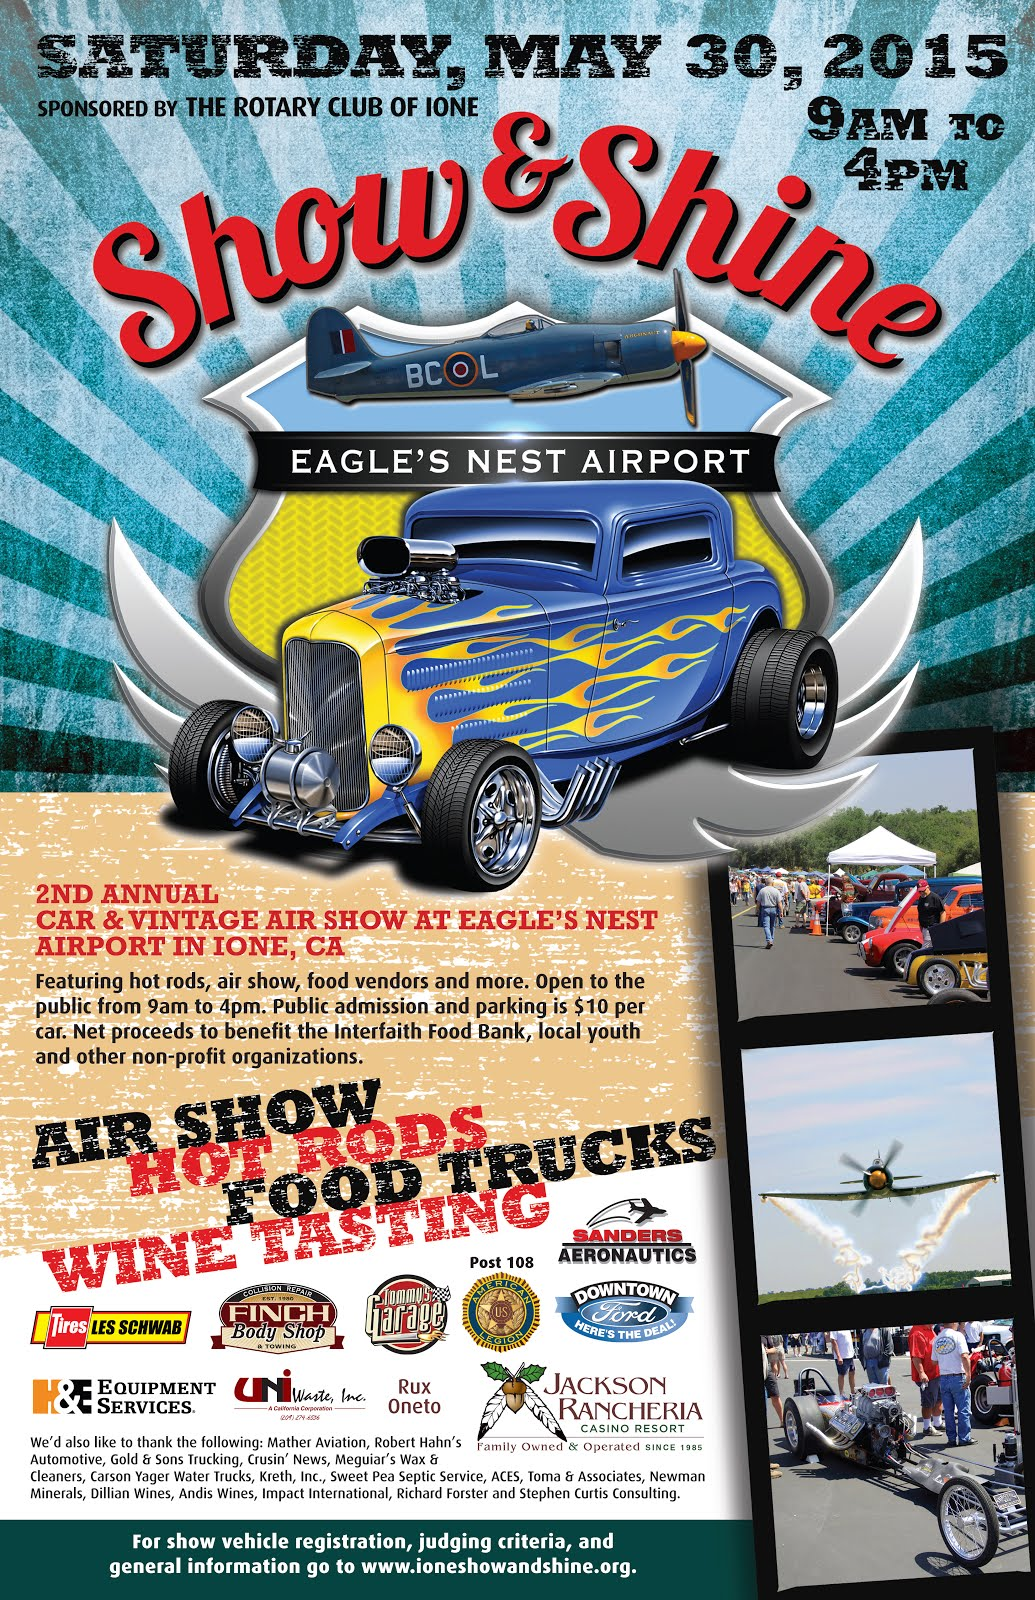 Ione Show & Shine Car & Vintage Airshow - Sat May 30